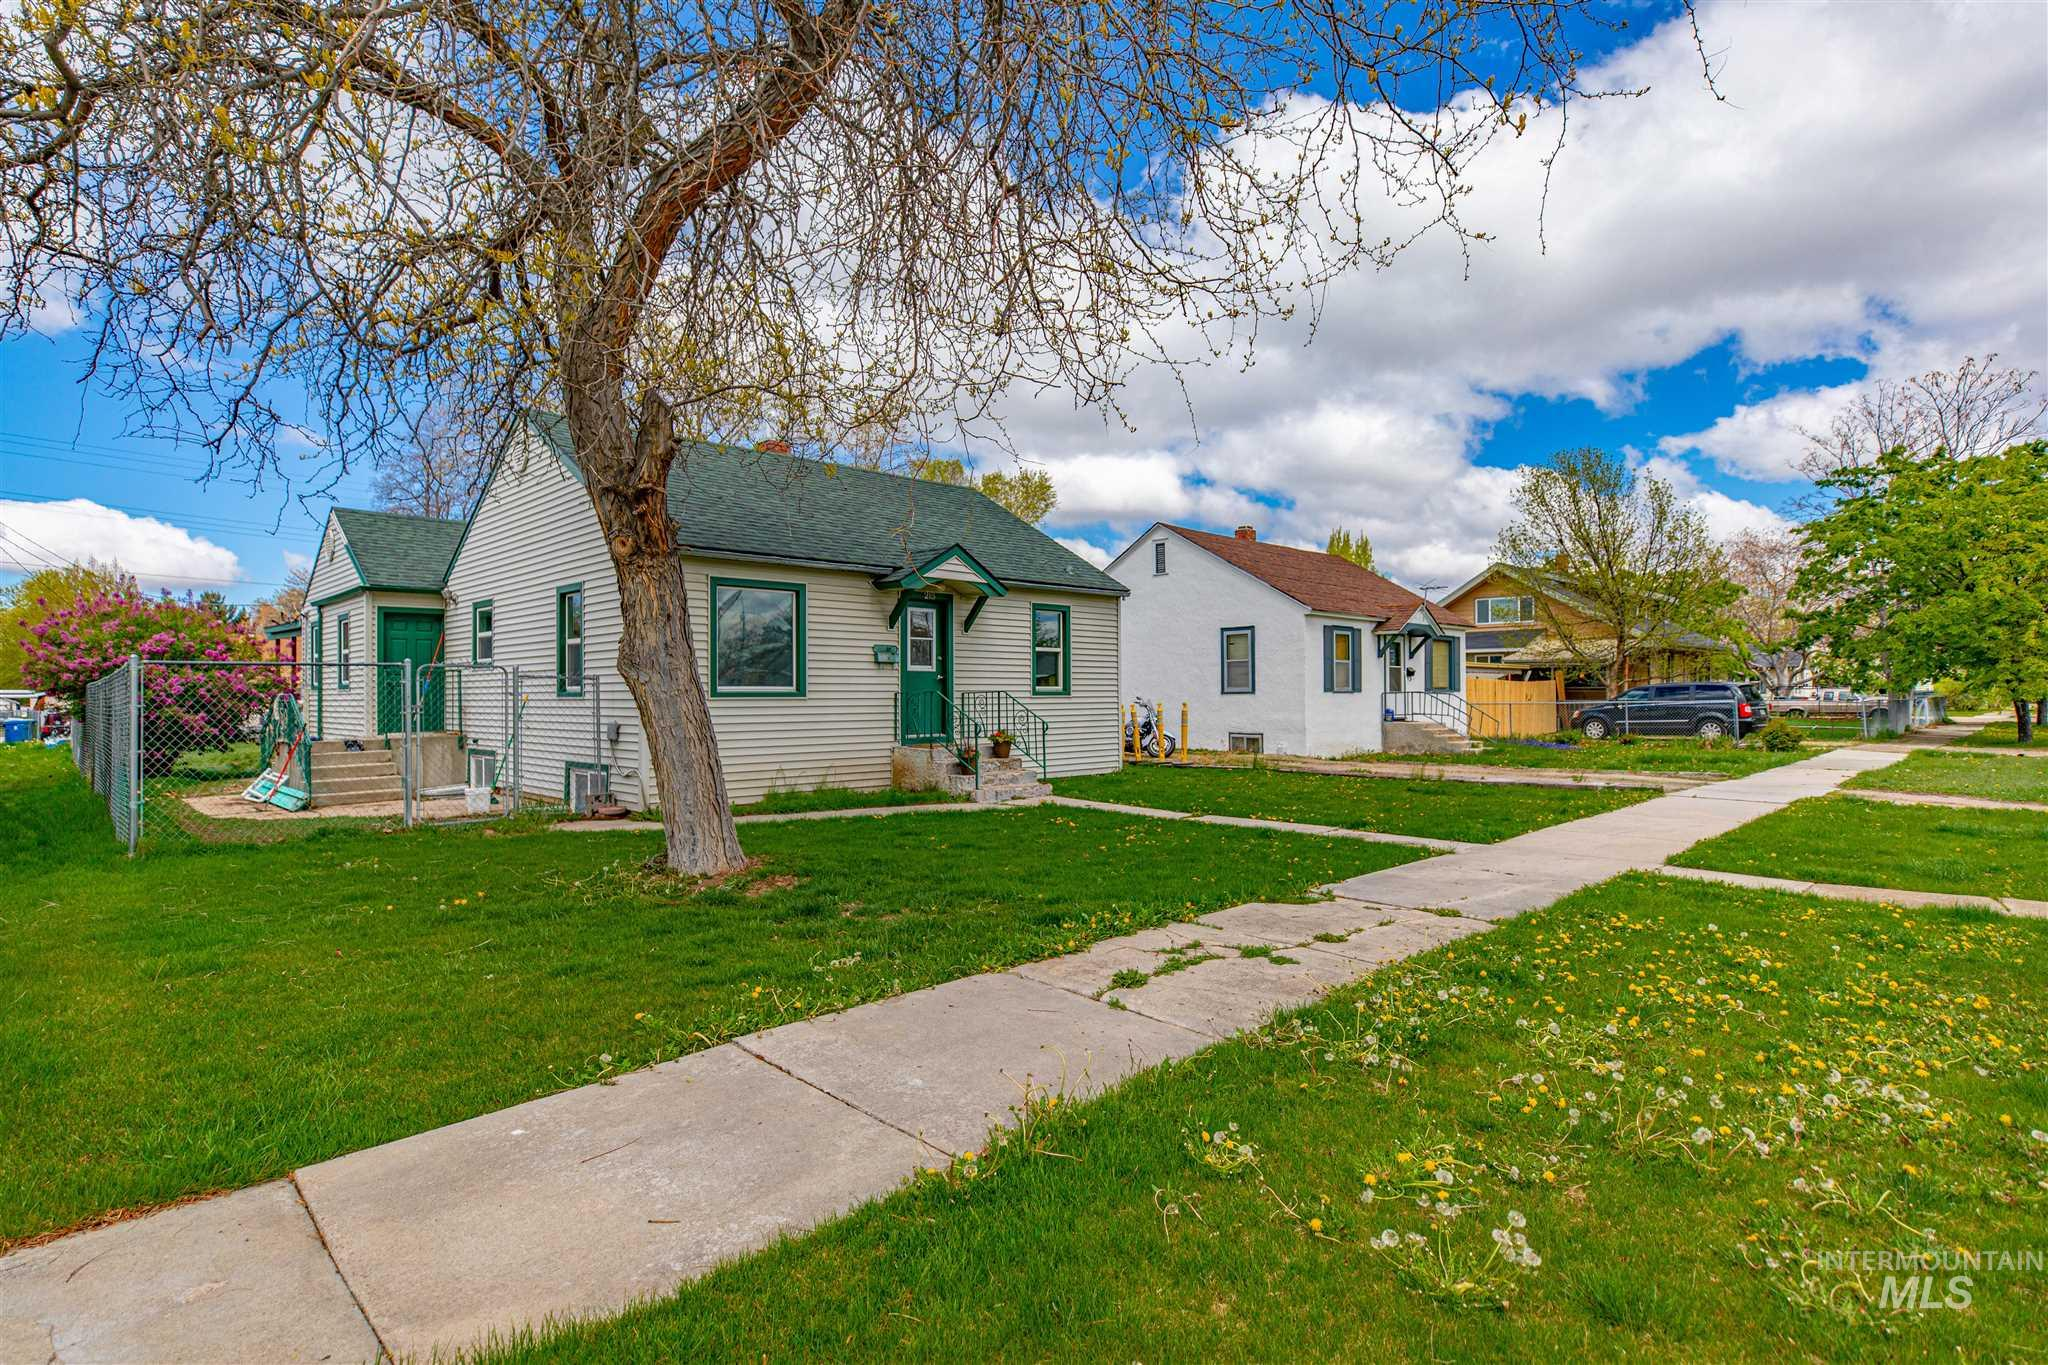 215 S Juniper St Property Photo - Nampa, ID real estate listing